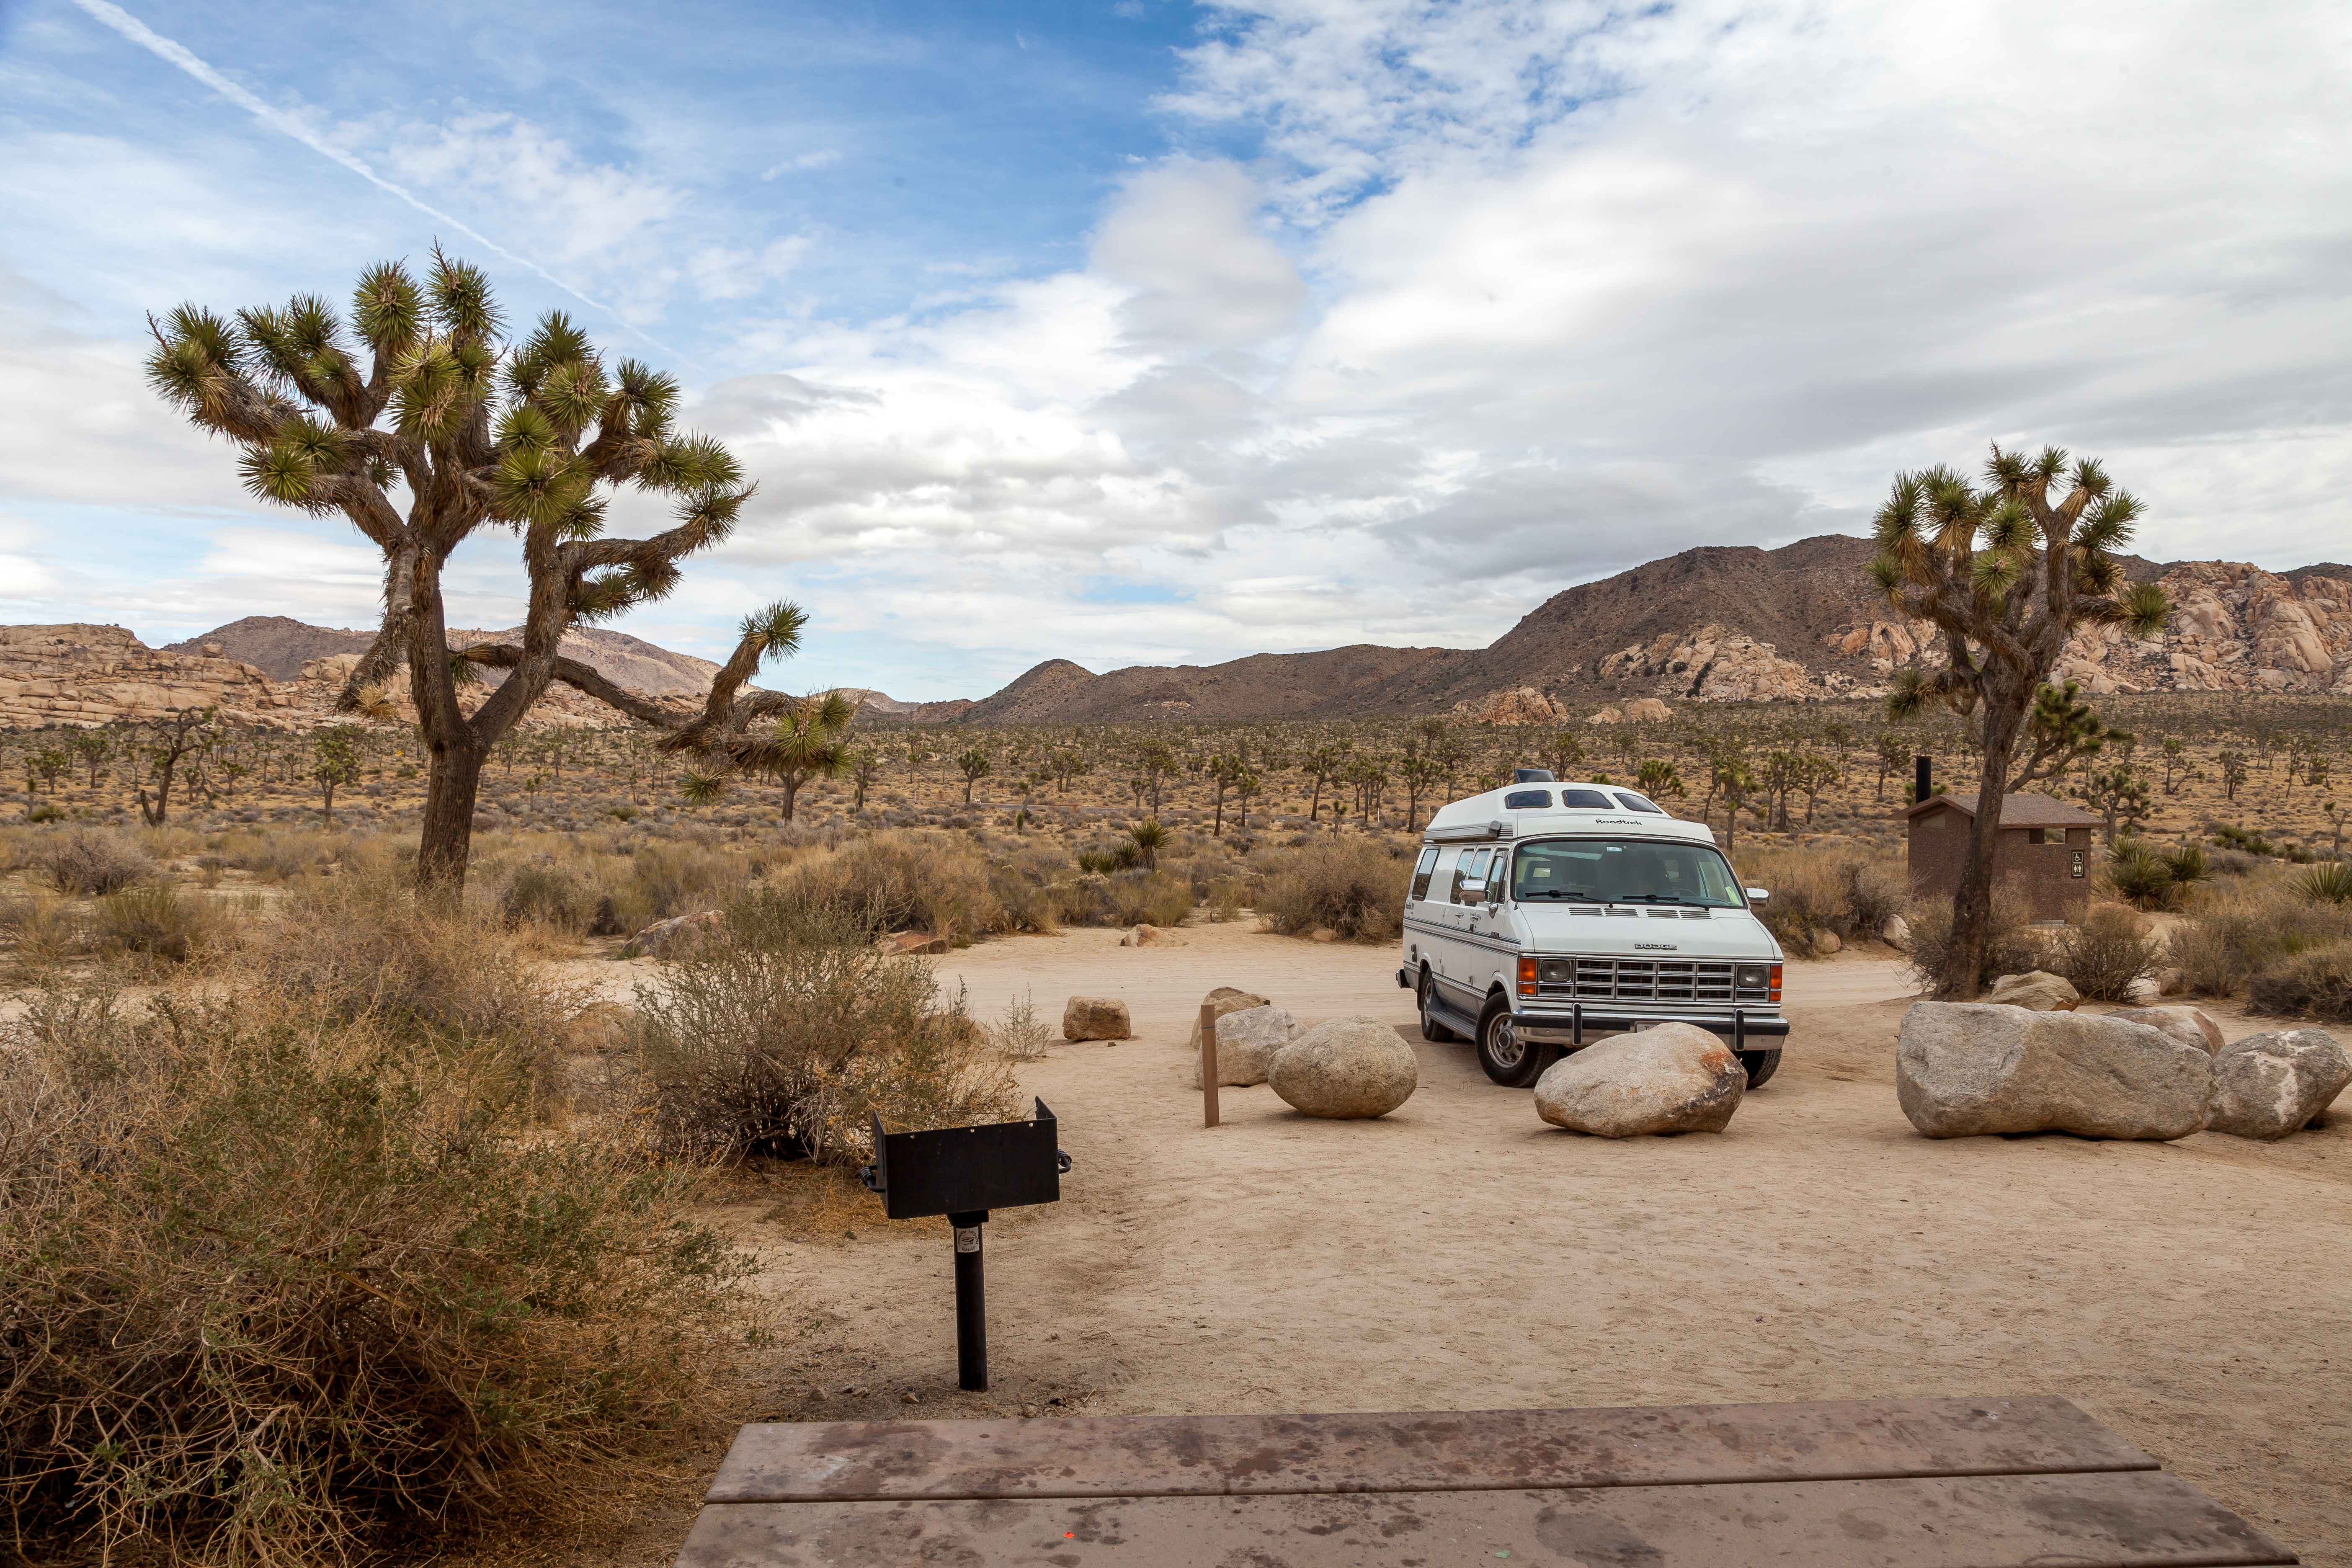 my van at campsite 40 at Hidden Valley Campground in Joshua Tree National Park